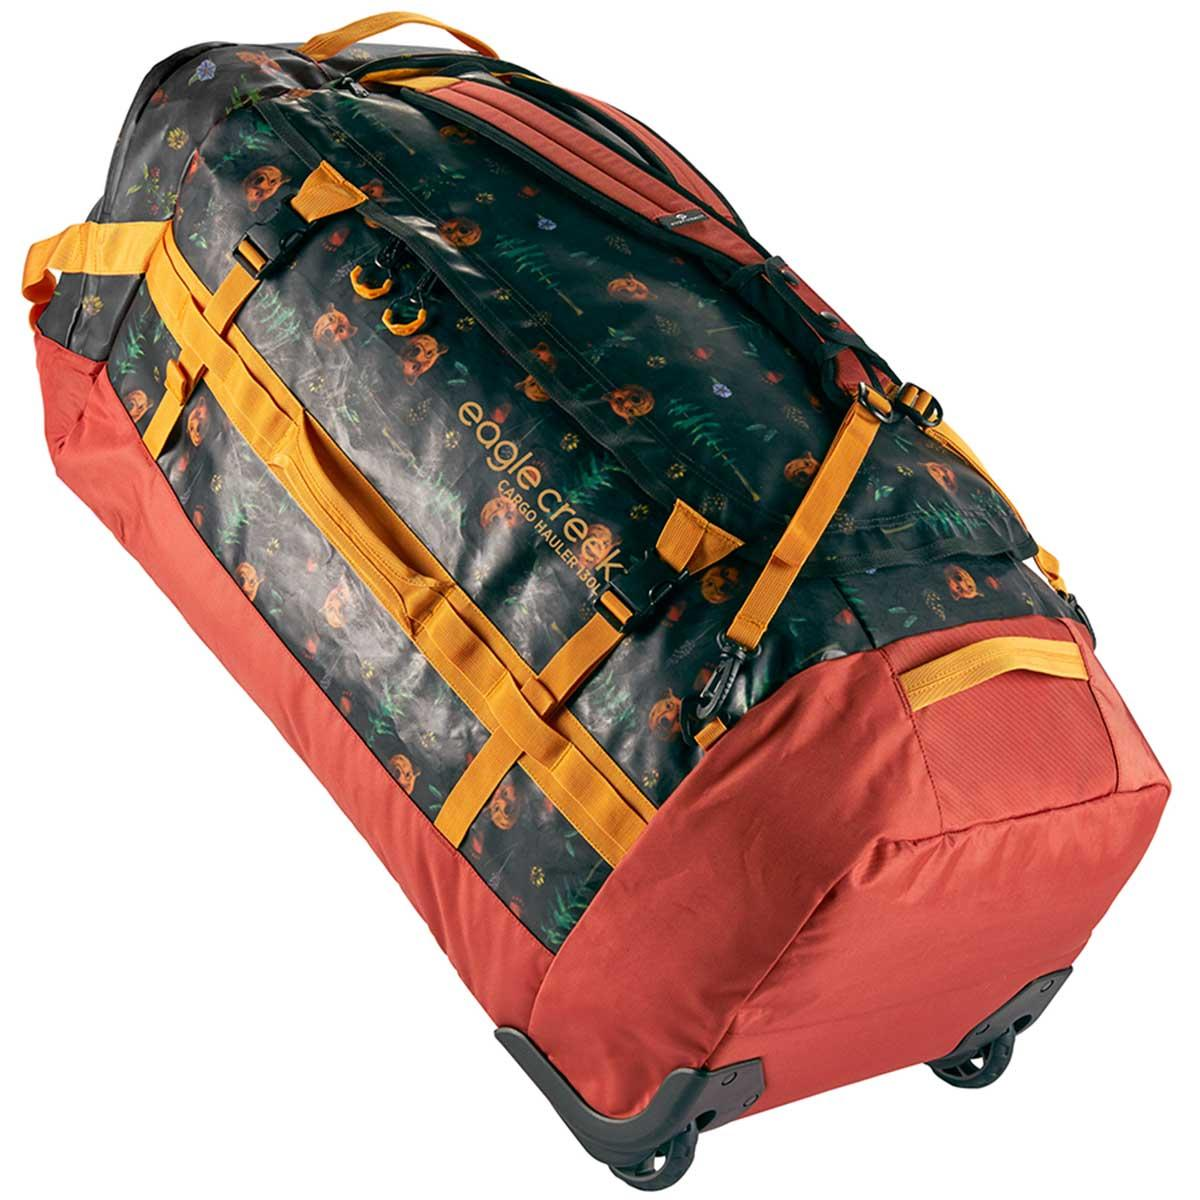 Eagle Creek Cargo Hauler Wheeled Duffel 130L in Golden State Print